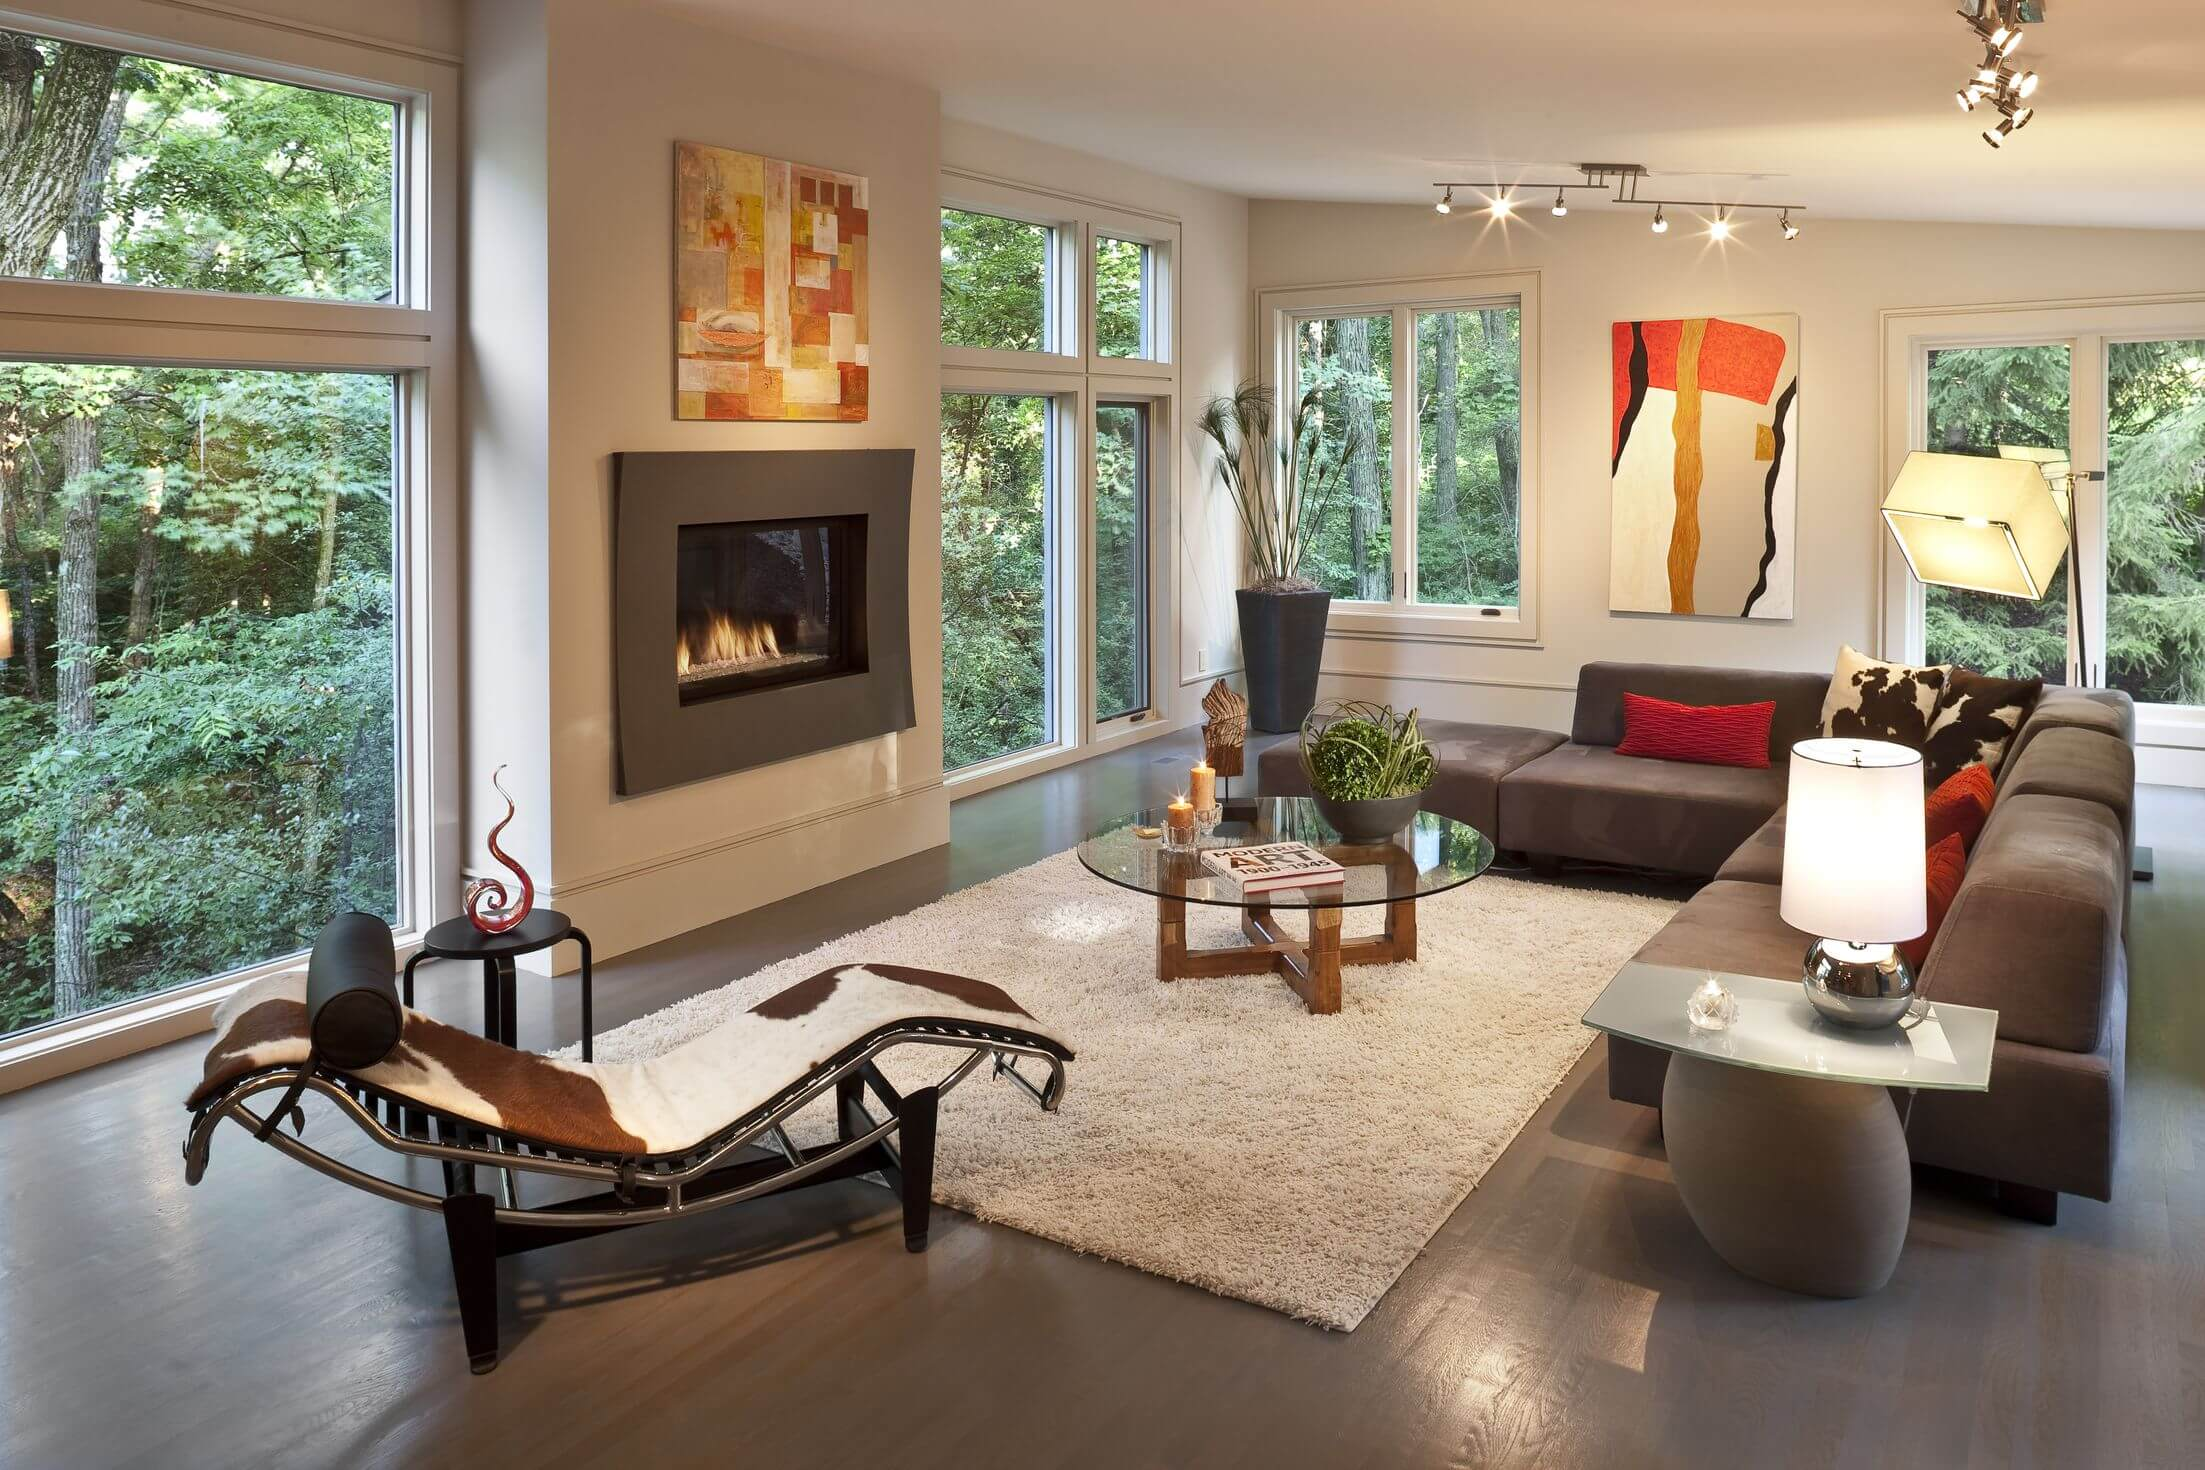 Charmant Sloped White Ceiling Over Dark Wood Flooring In This Living Room Holding  Modern Armless Brown Sofa